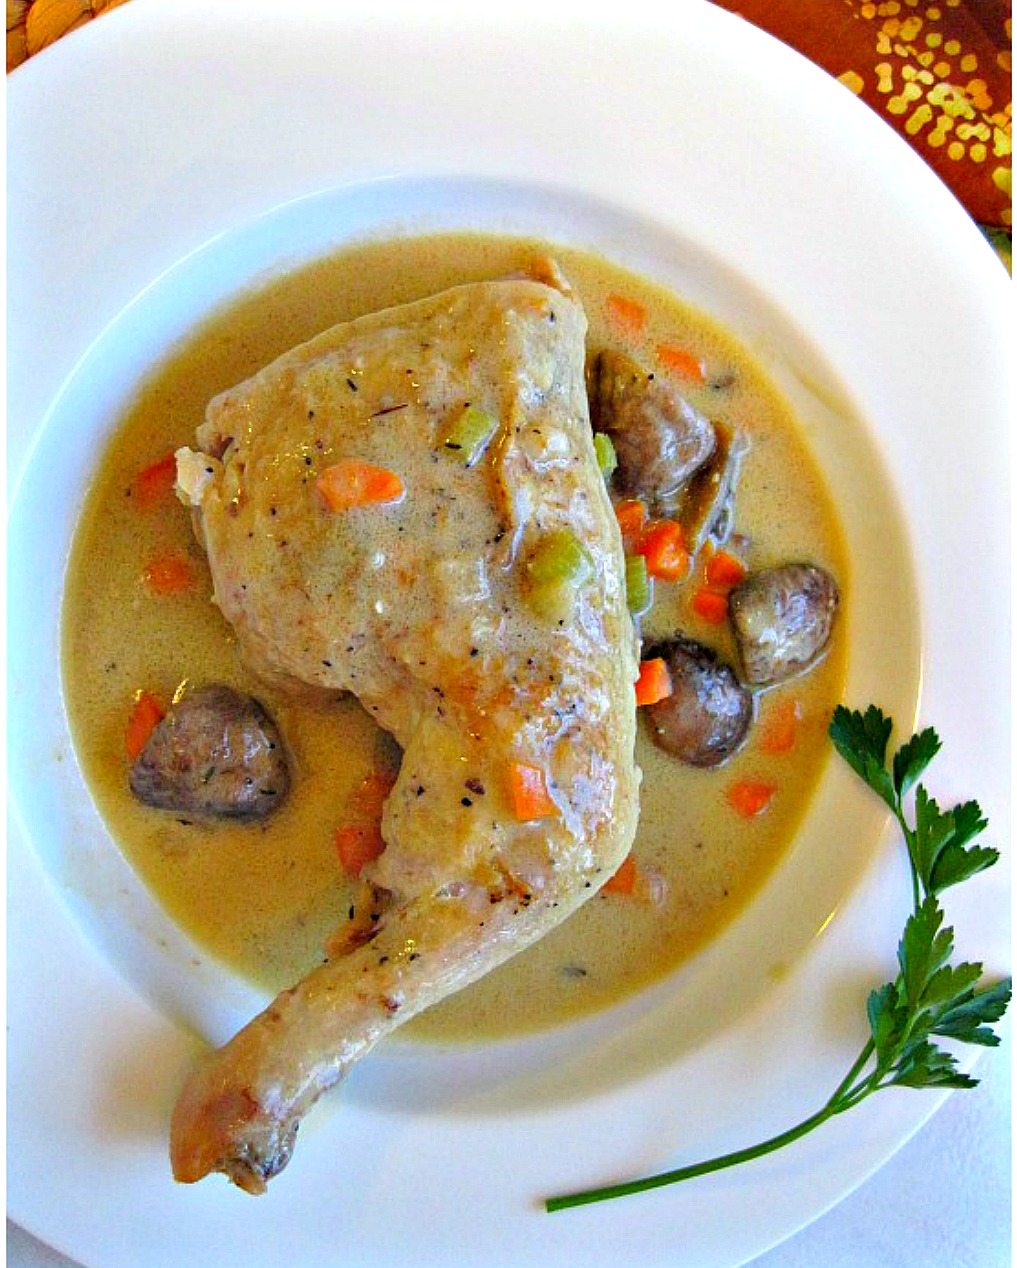 Classic Chicken Fricassee. A French braised chicken dish with a silky gravy.